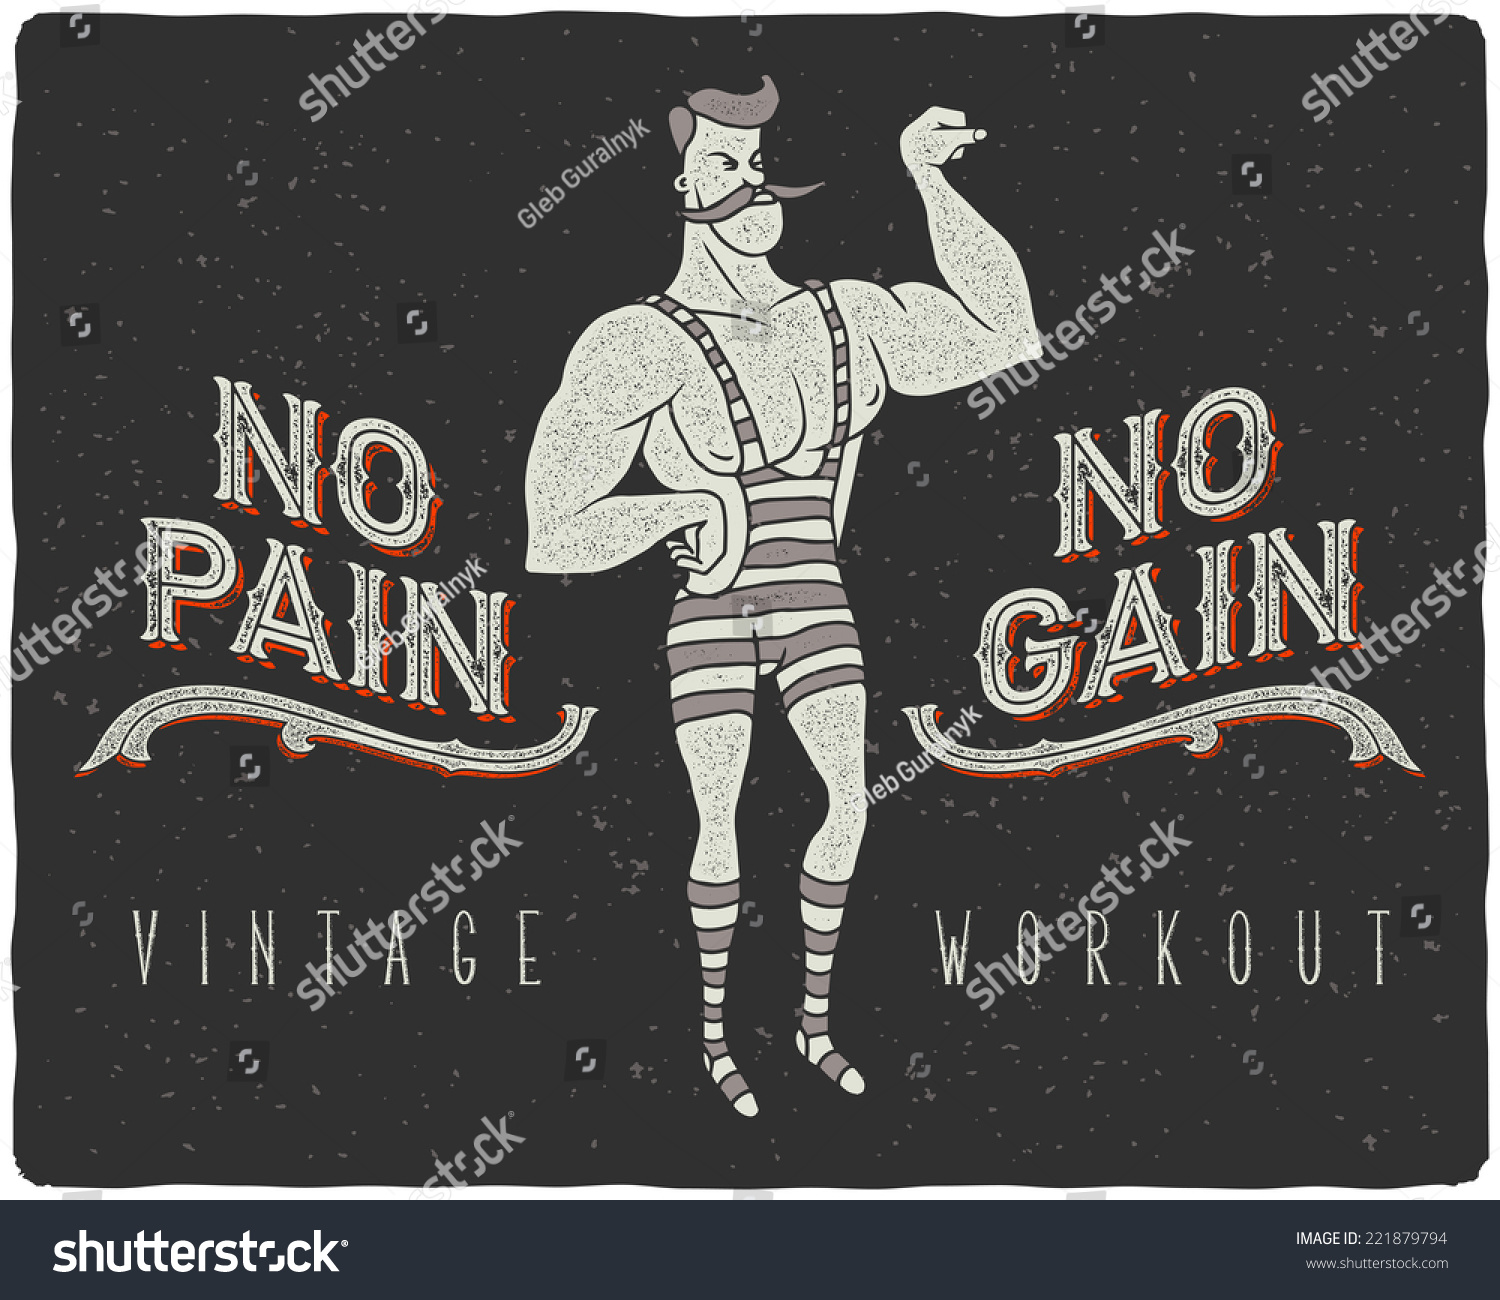 no pains no gains essay no pains no gains essay essays on no pain no gain essay through